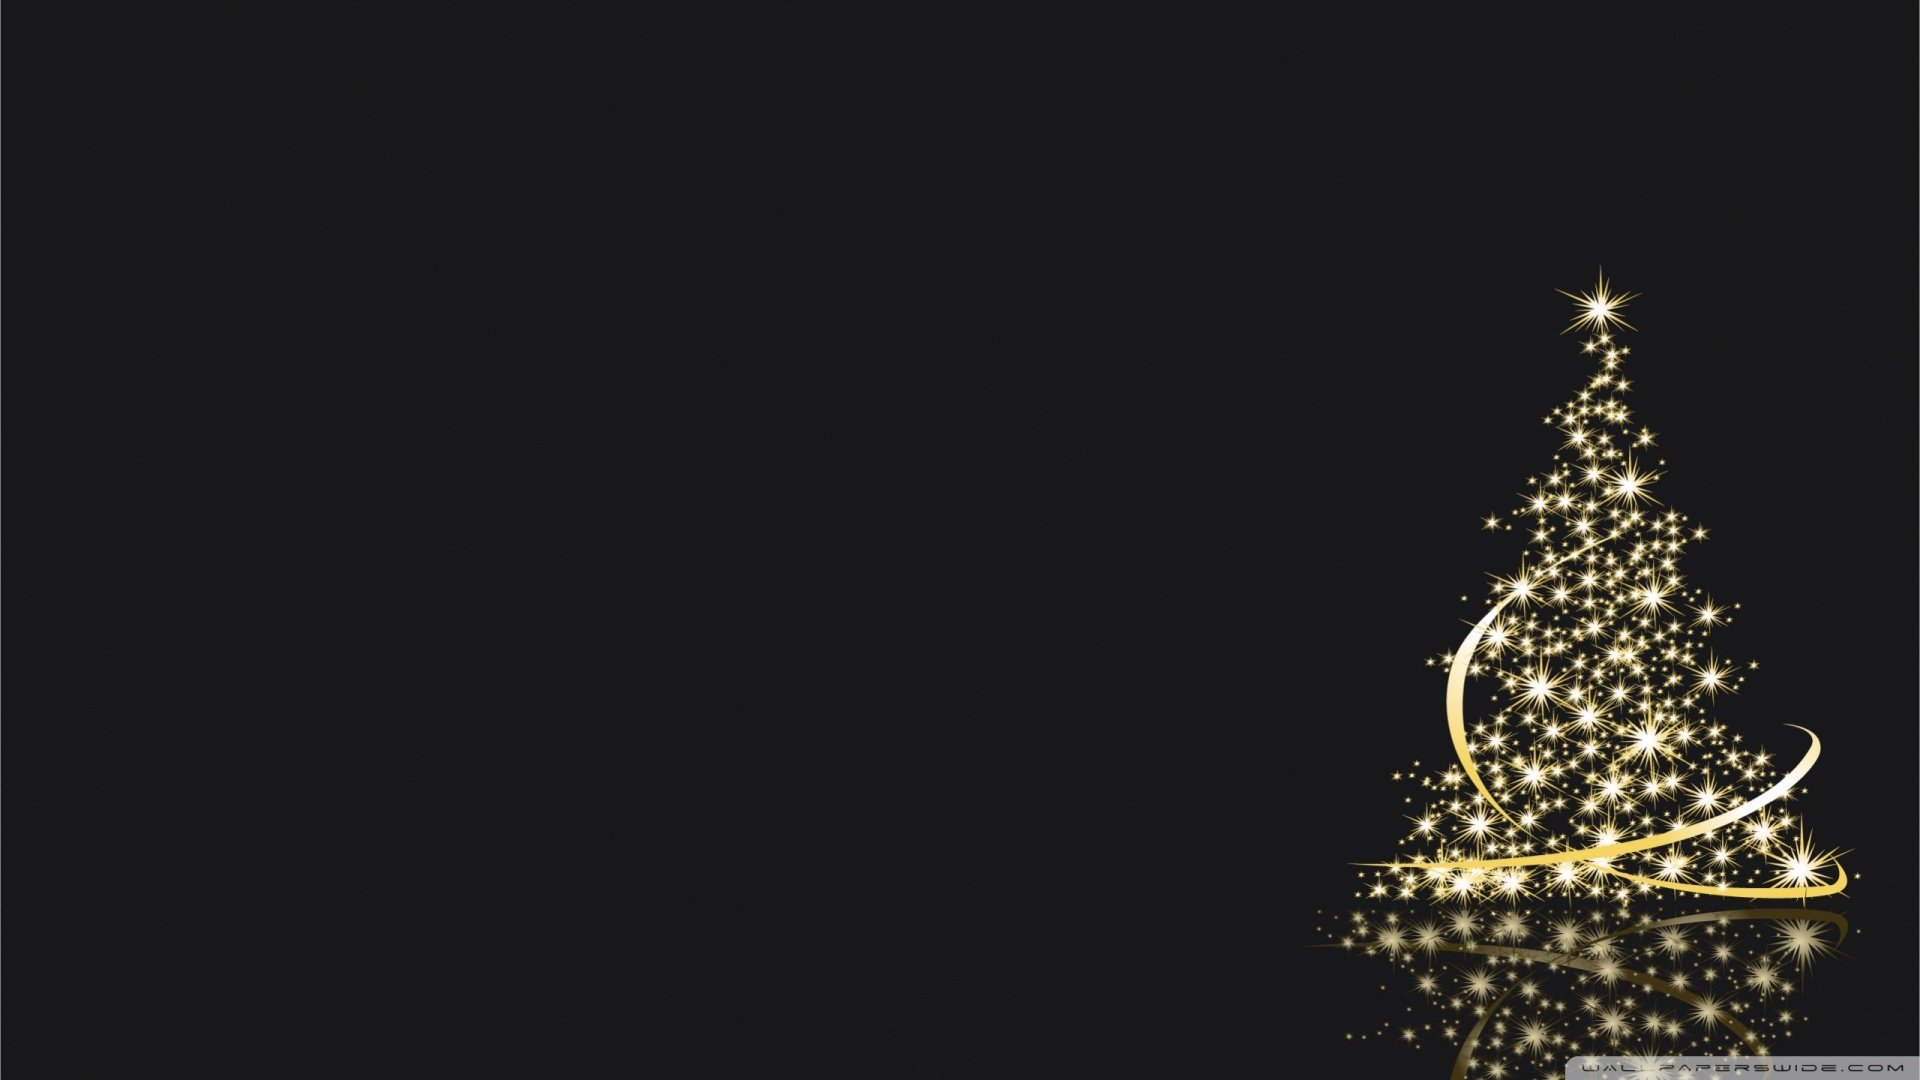 Top 12 Christmas tree Wallpaper and Desktop Backgrounds 1920x1080